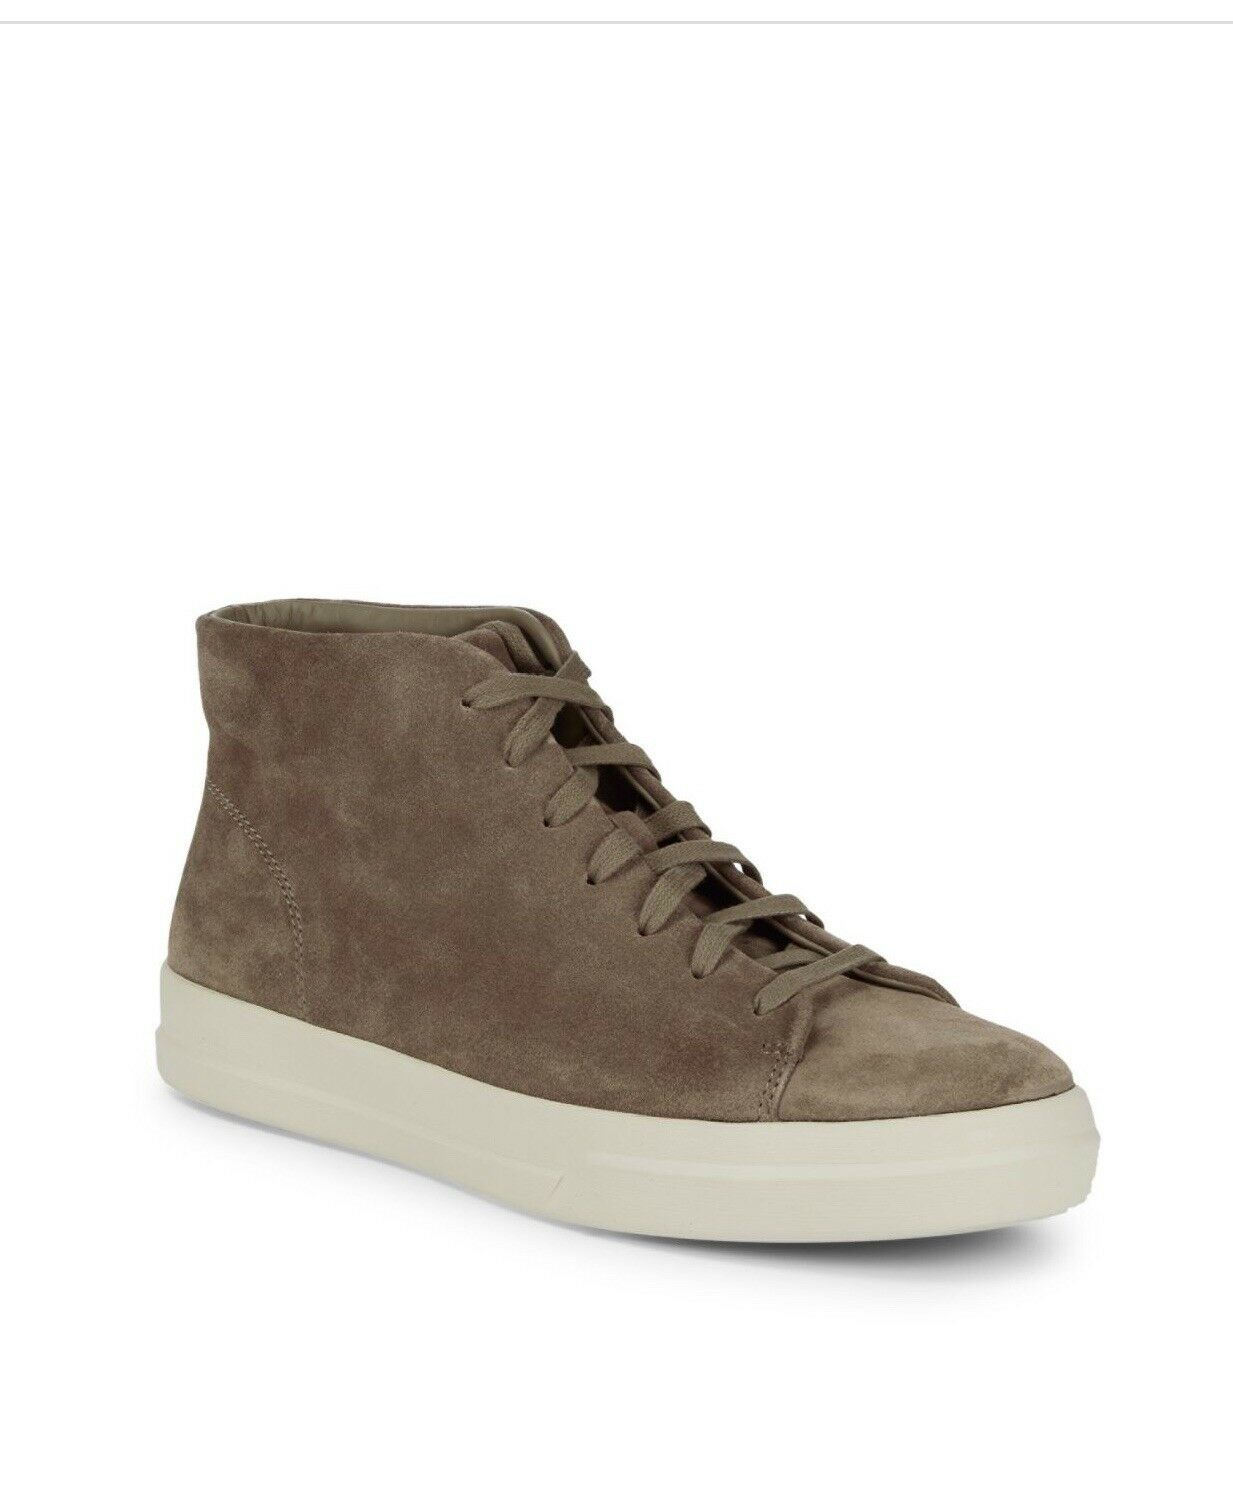 New in Box -  350 Vince Cullen Suede Leather Hi Top Men Sneaker, Size 8 Flint